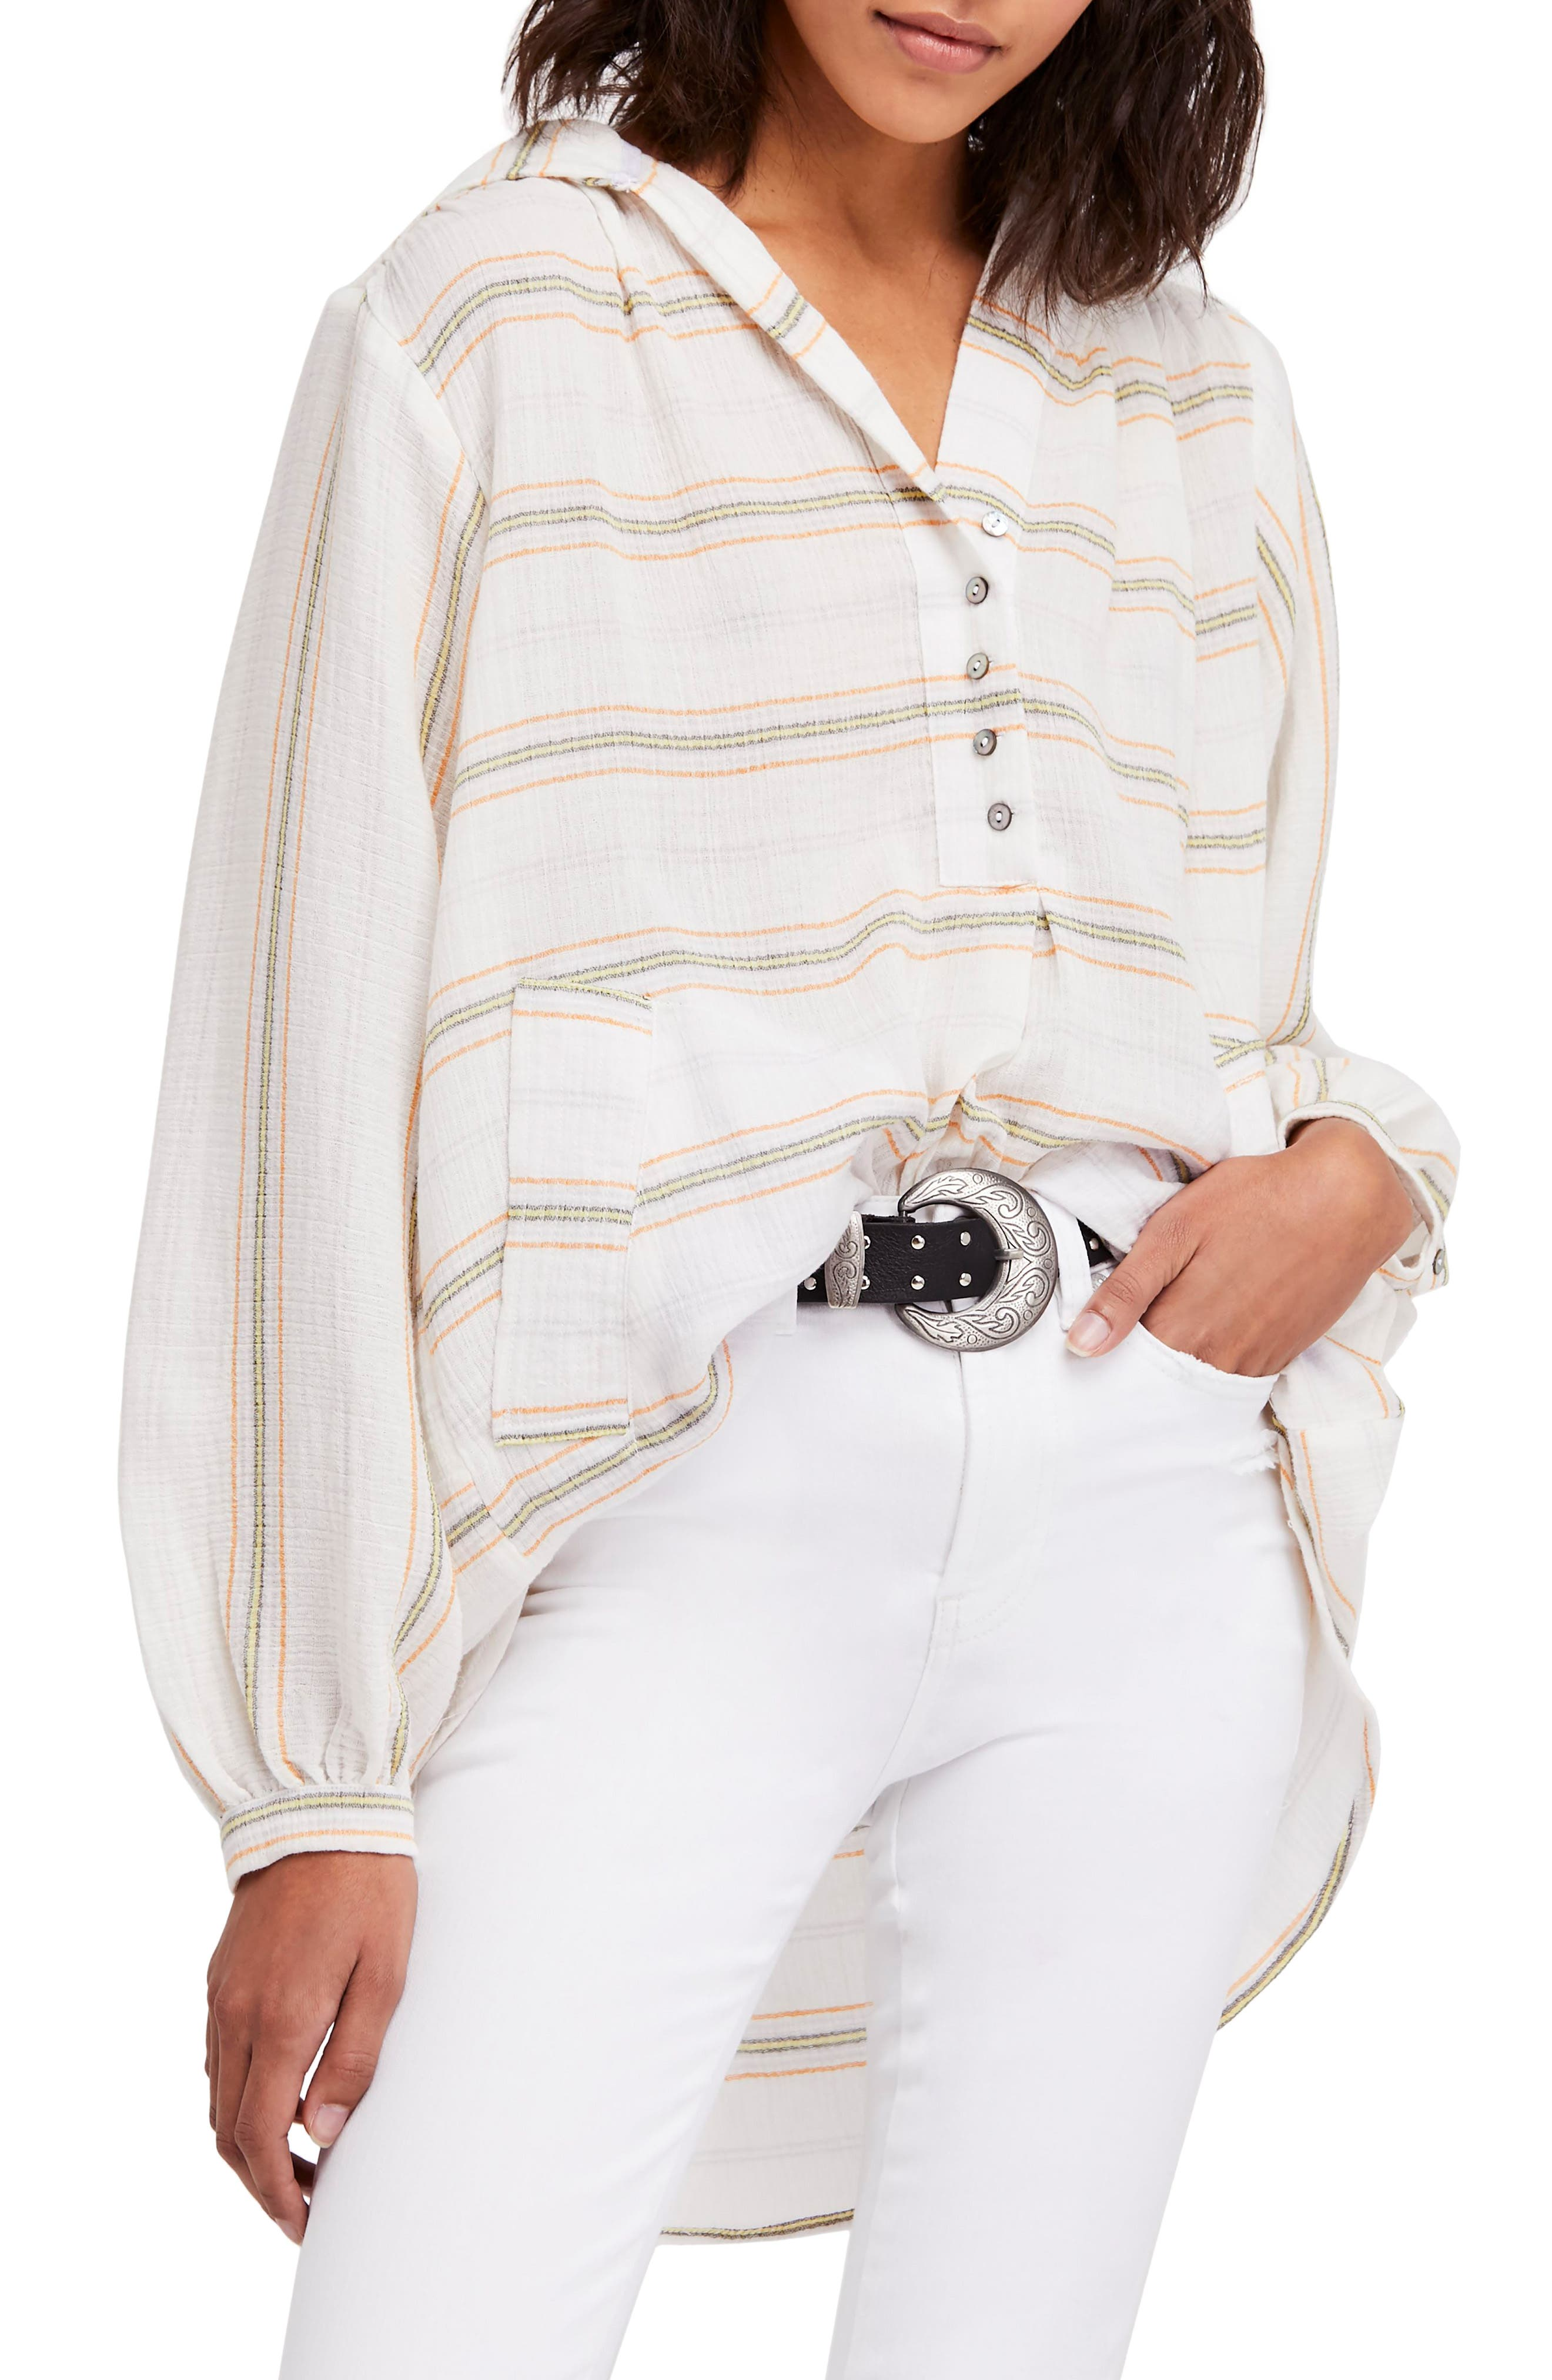 Rolling Clouds Hooded Top,                         Main,                         color, Ivory